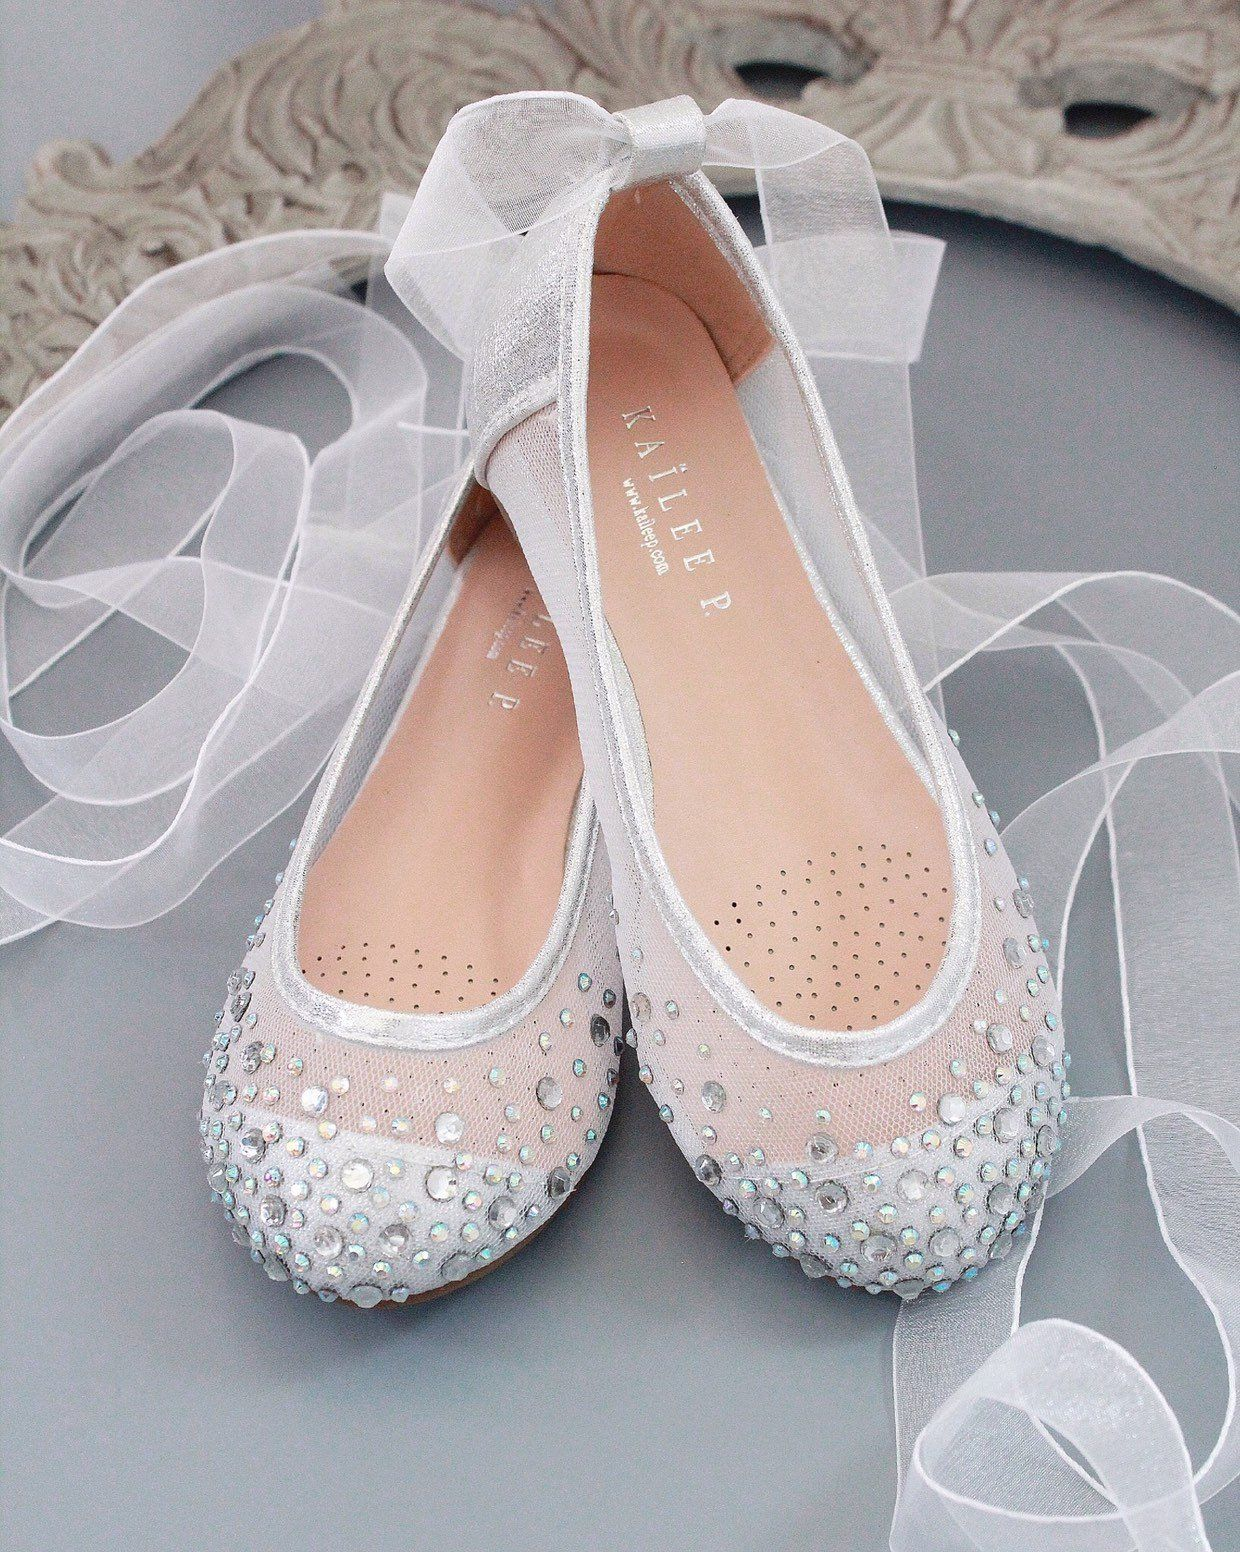 Silver Mesh With Scattered Rhinestones Ballerina Lace Up Etsy Girls Shoes Silver Shoes Flower Girl Shoes